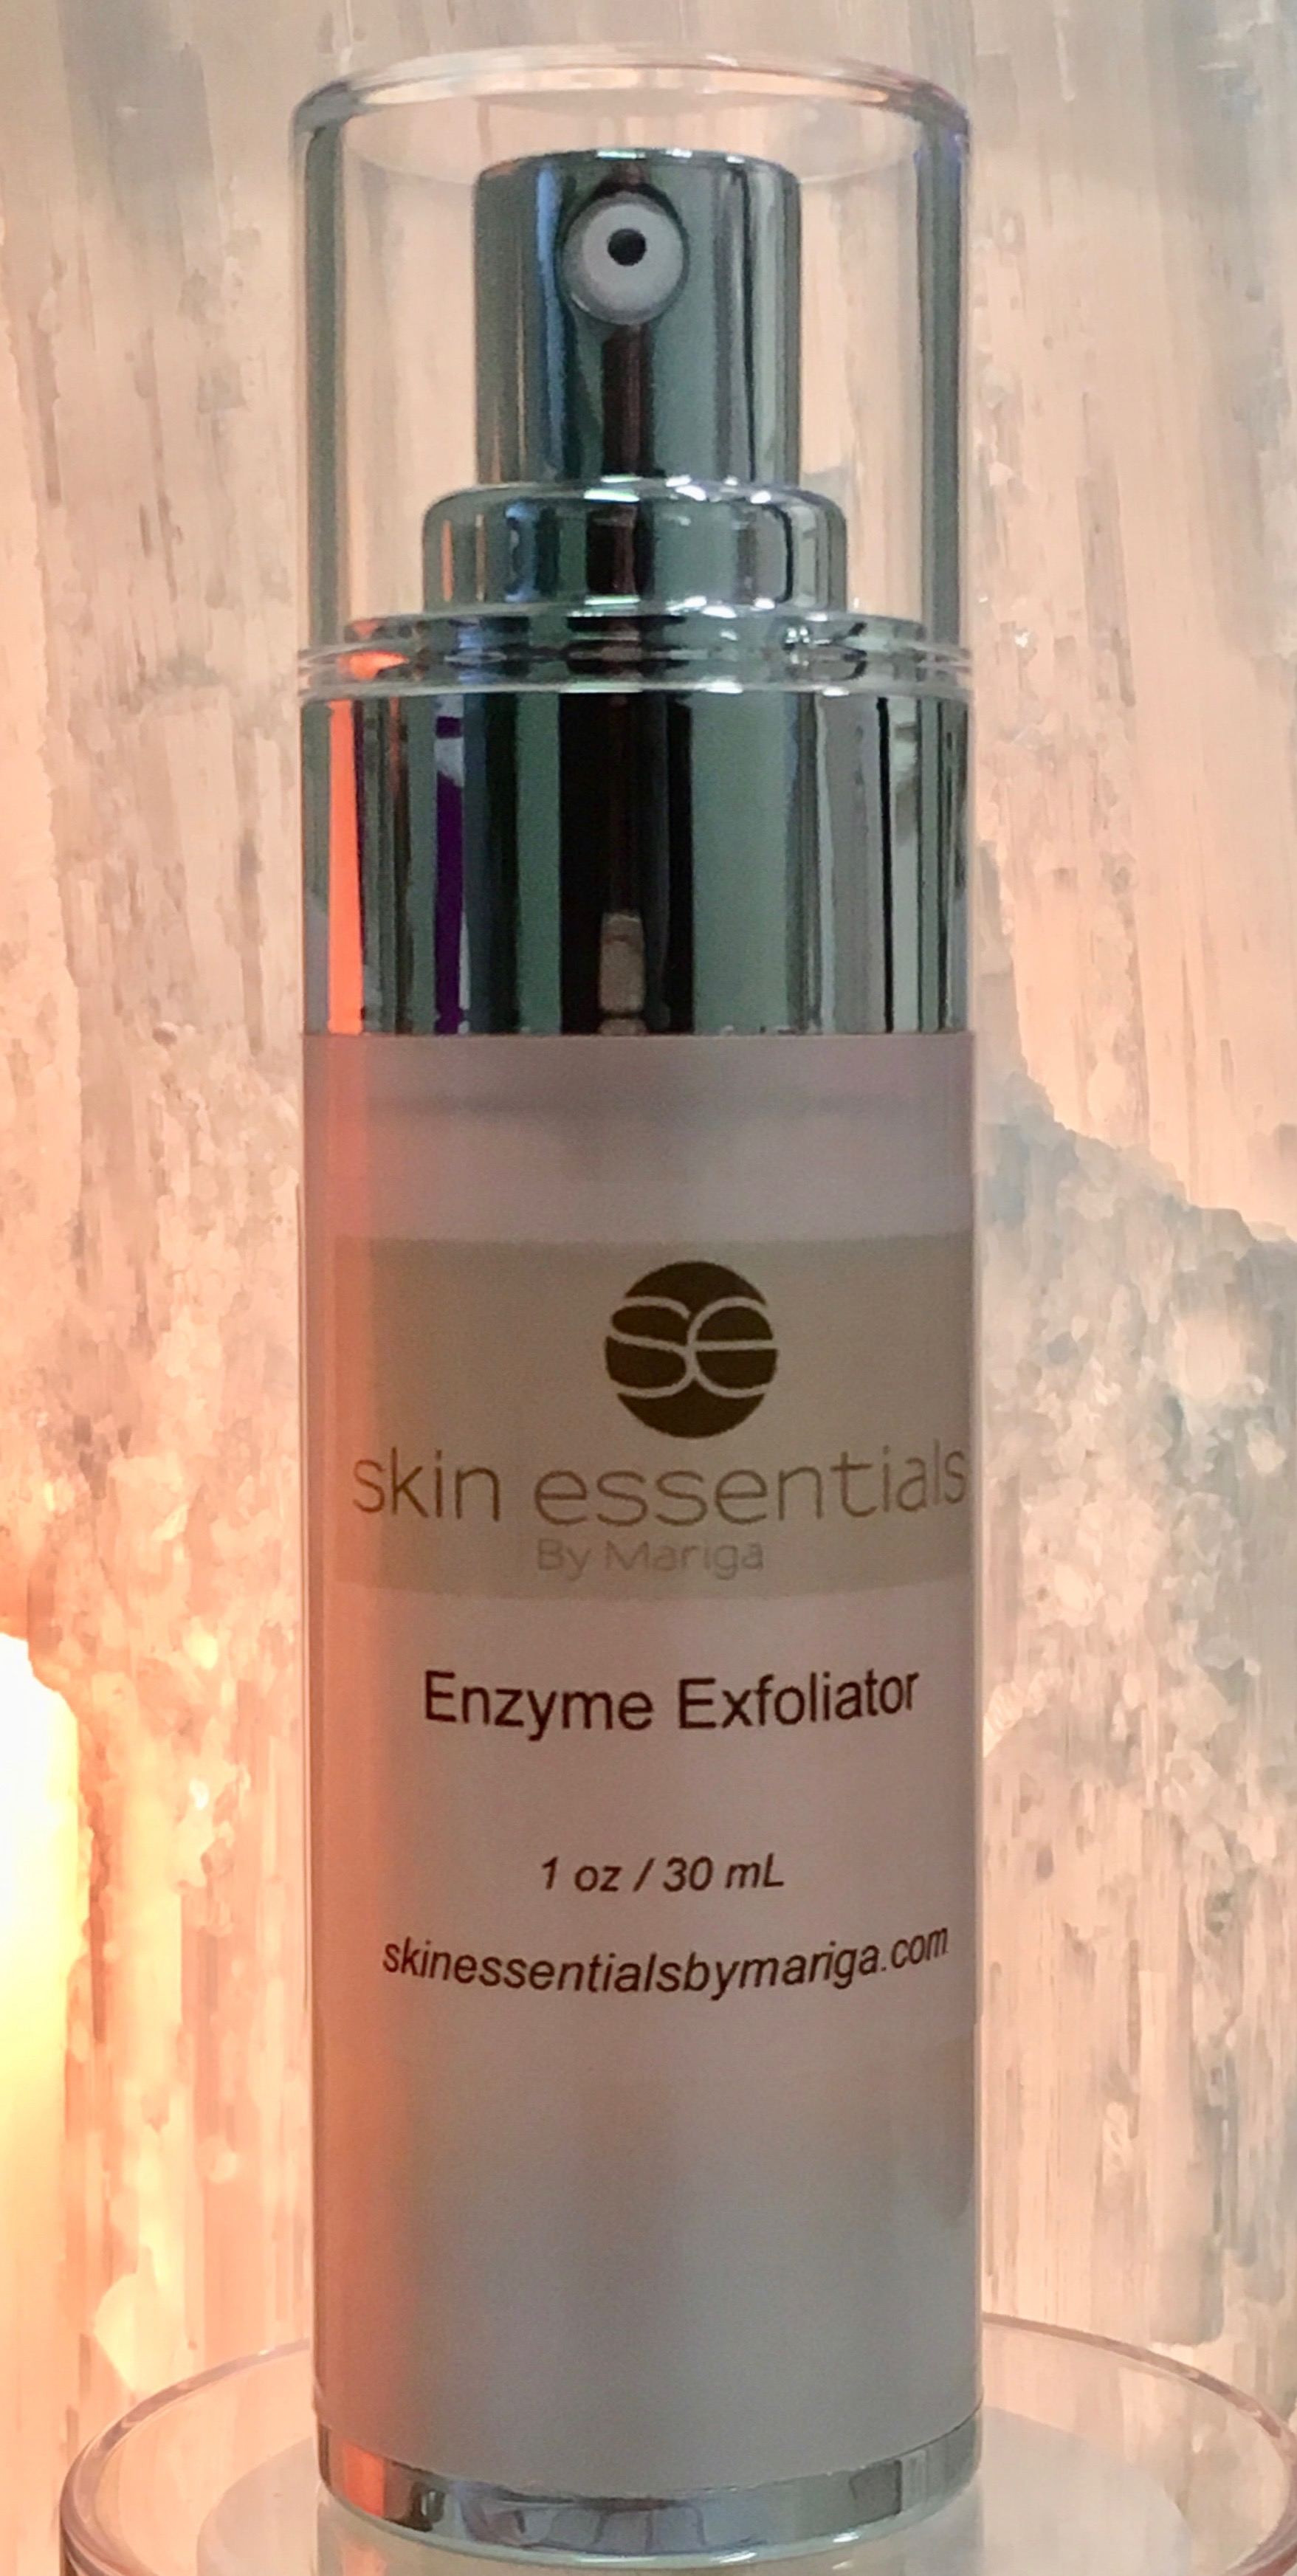 pic of 30ml airless pump bottle of Enzyme Exfoliator from Skin Essentials by Mariga, Wexford